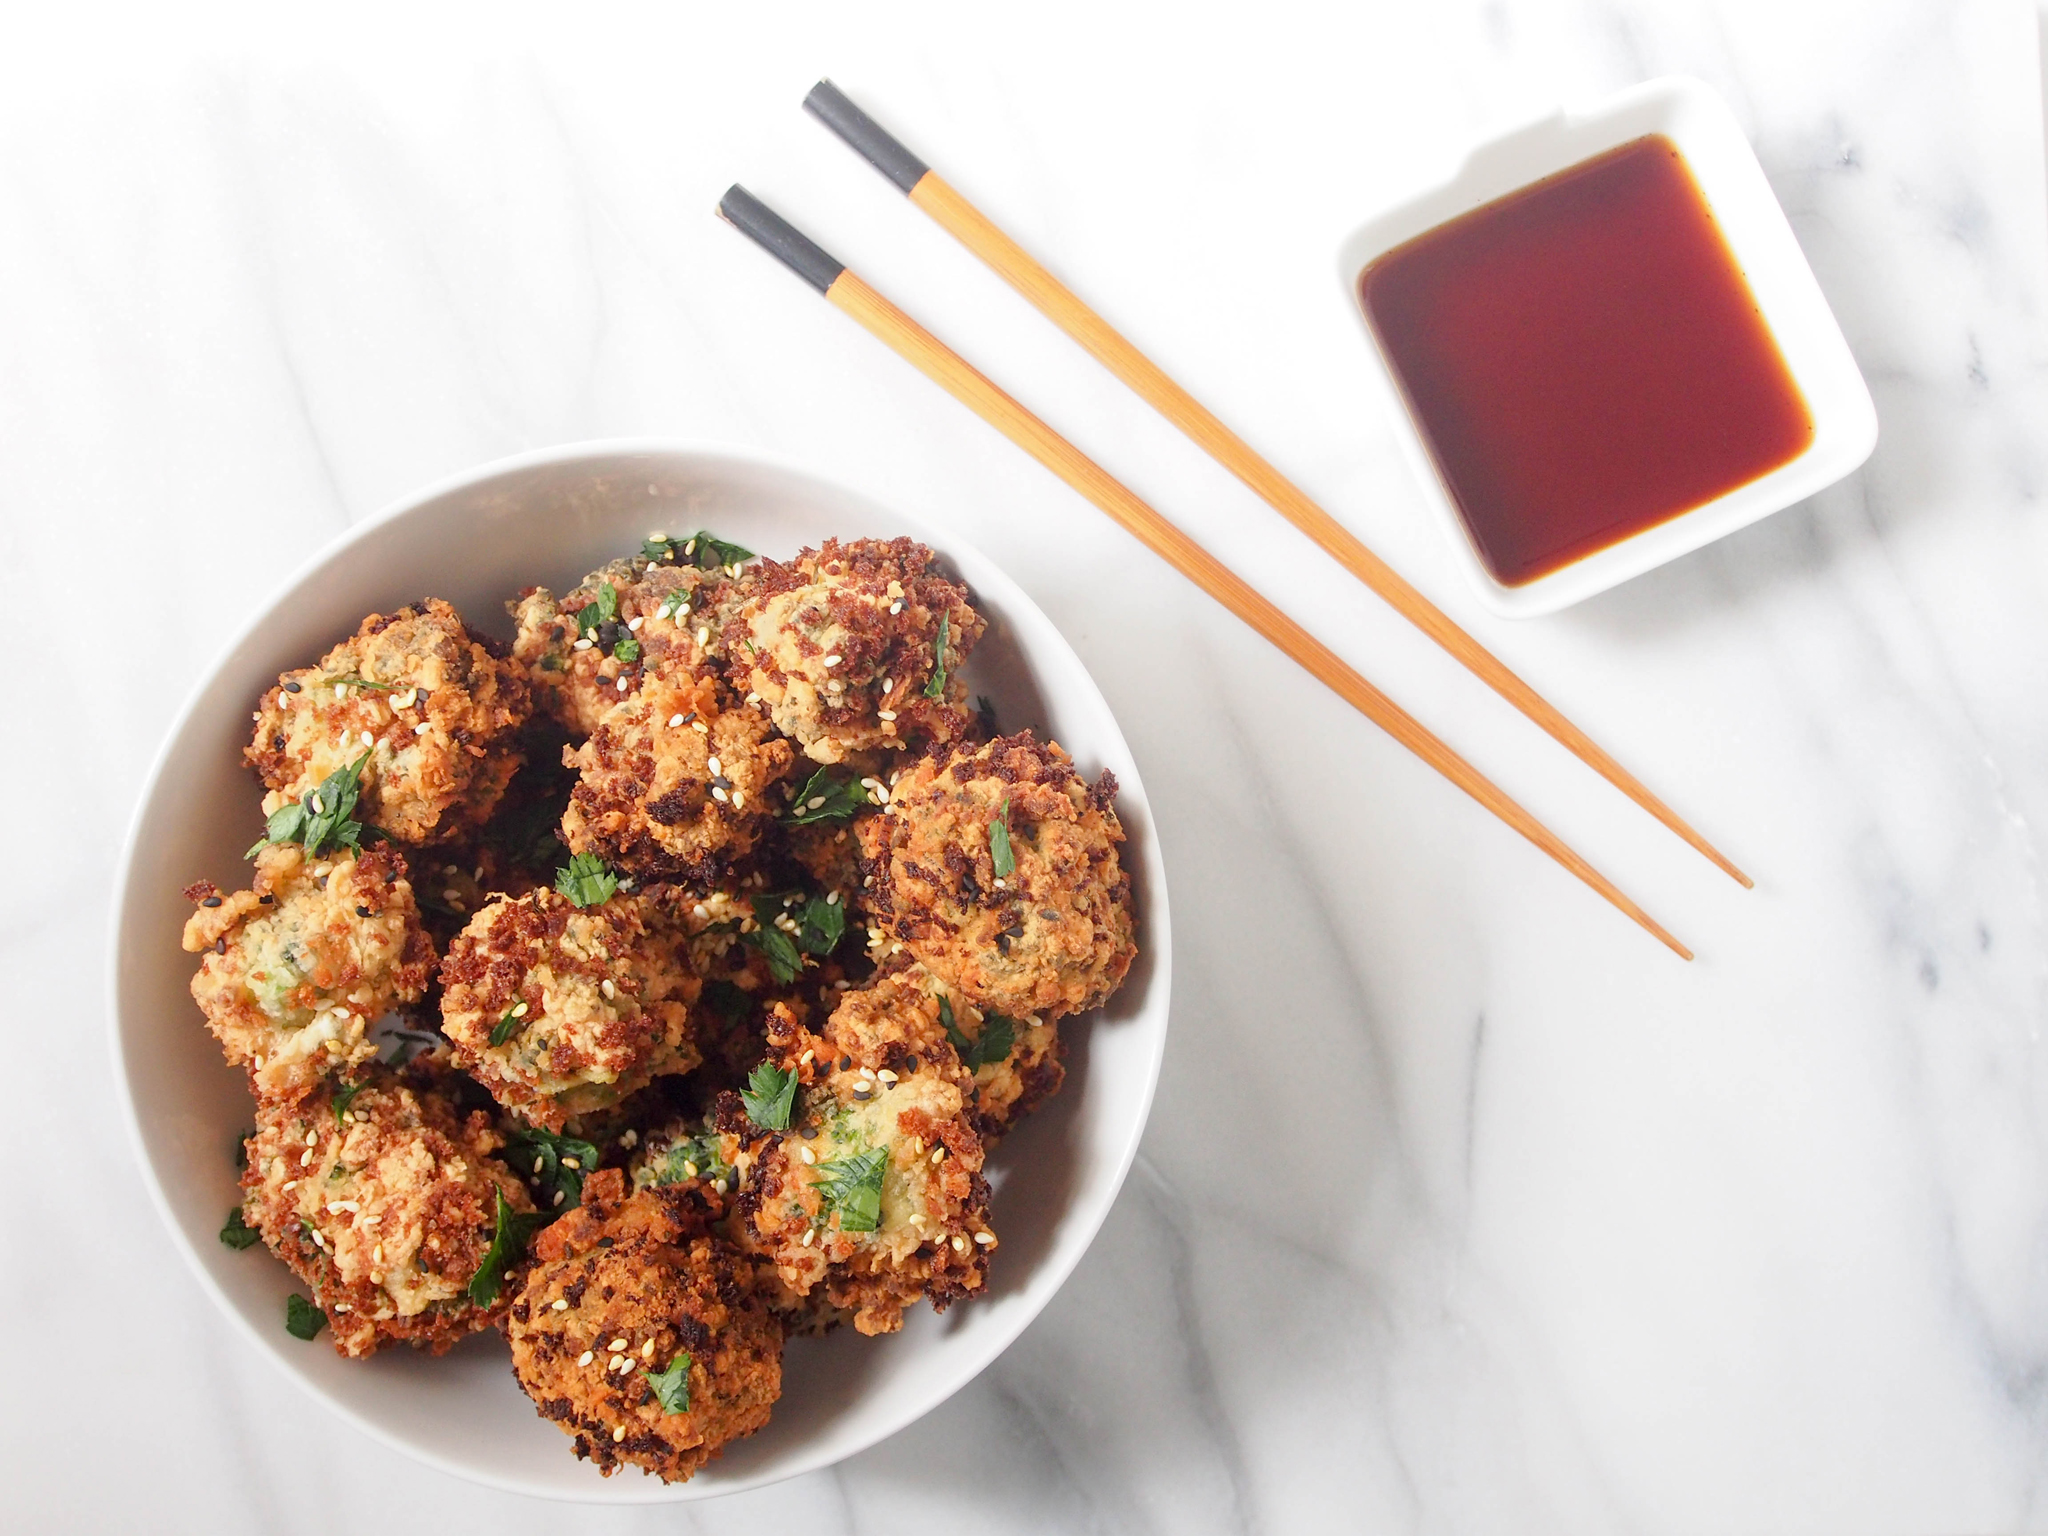 Korean Fusion: Fried Sesame Broccoli Bites with Ponzu Sauce